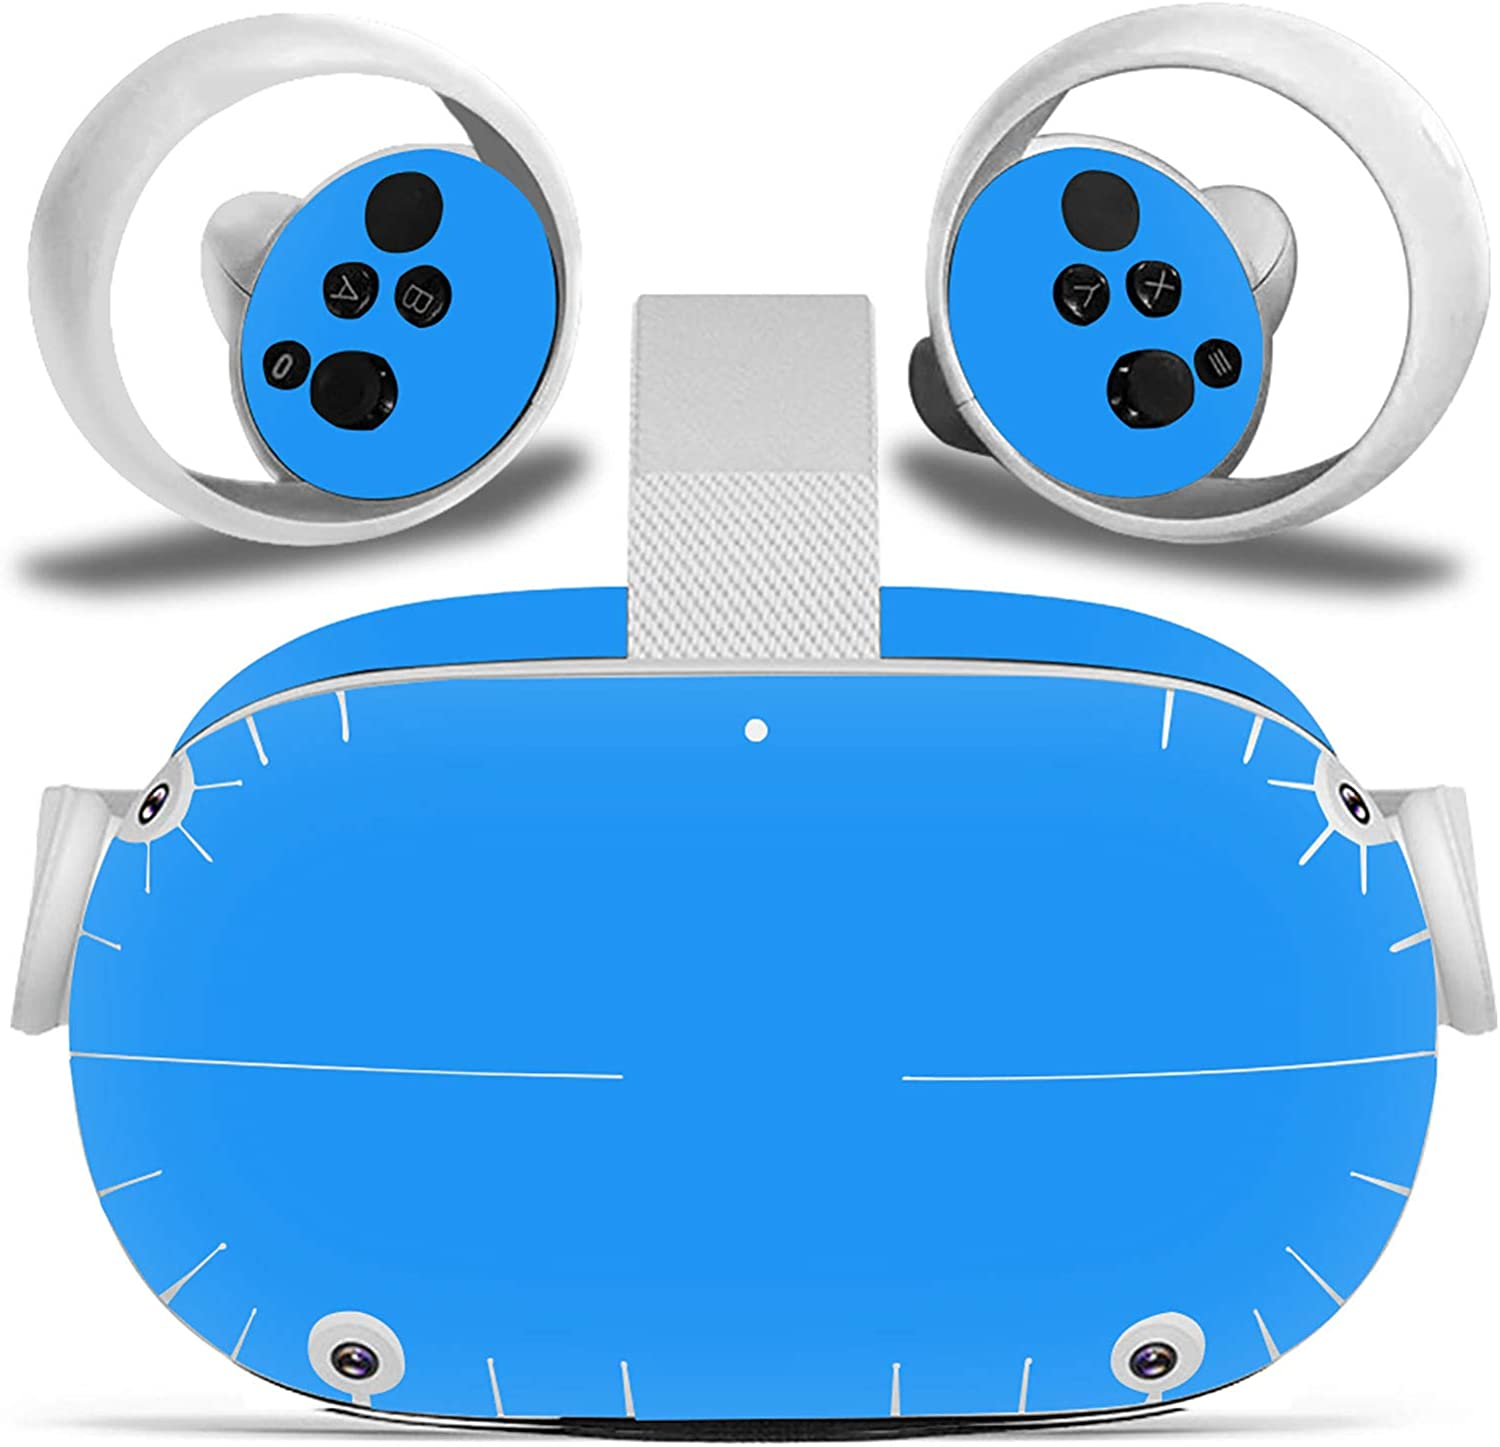 Vinyl Decal Stickers for Quest 2 Headset and Controller Cute Graphic Wrap Cover Skin to Customize The Oculus Bright & Vibrant Protective Fitment Adds Unique Style to VR Devices-Pure Blue